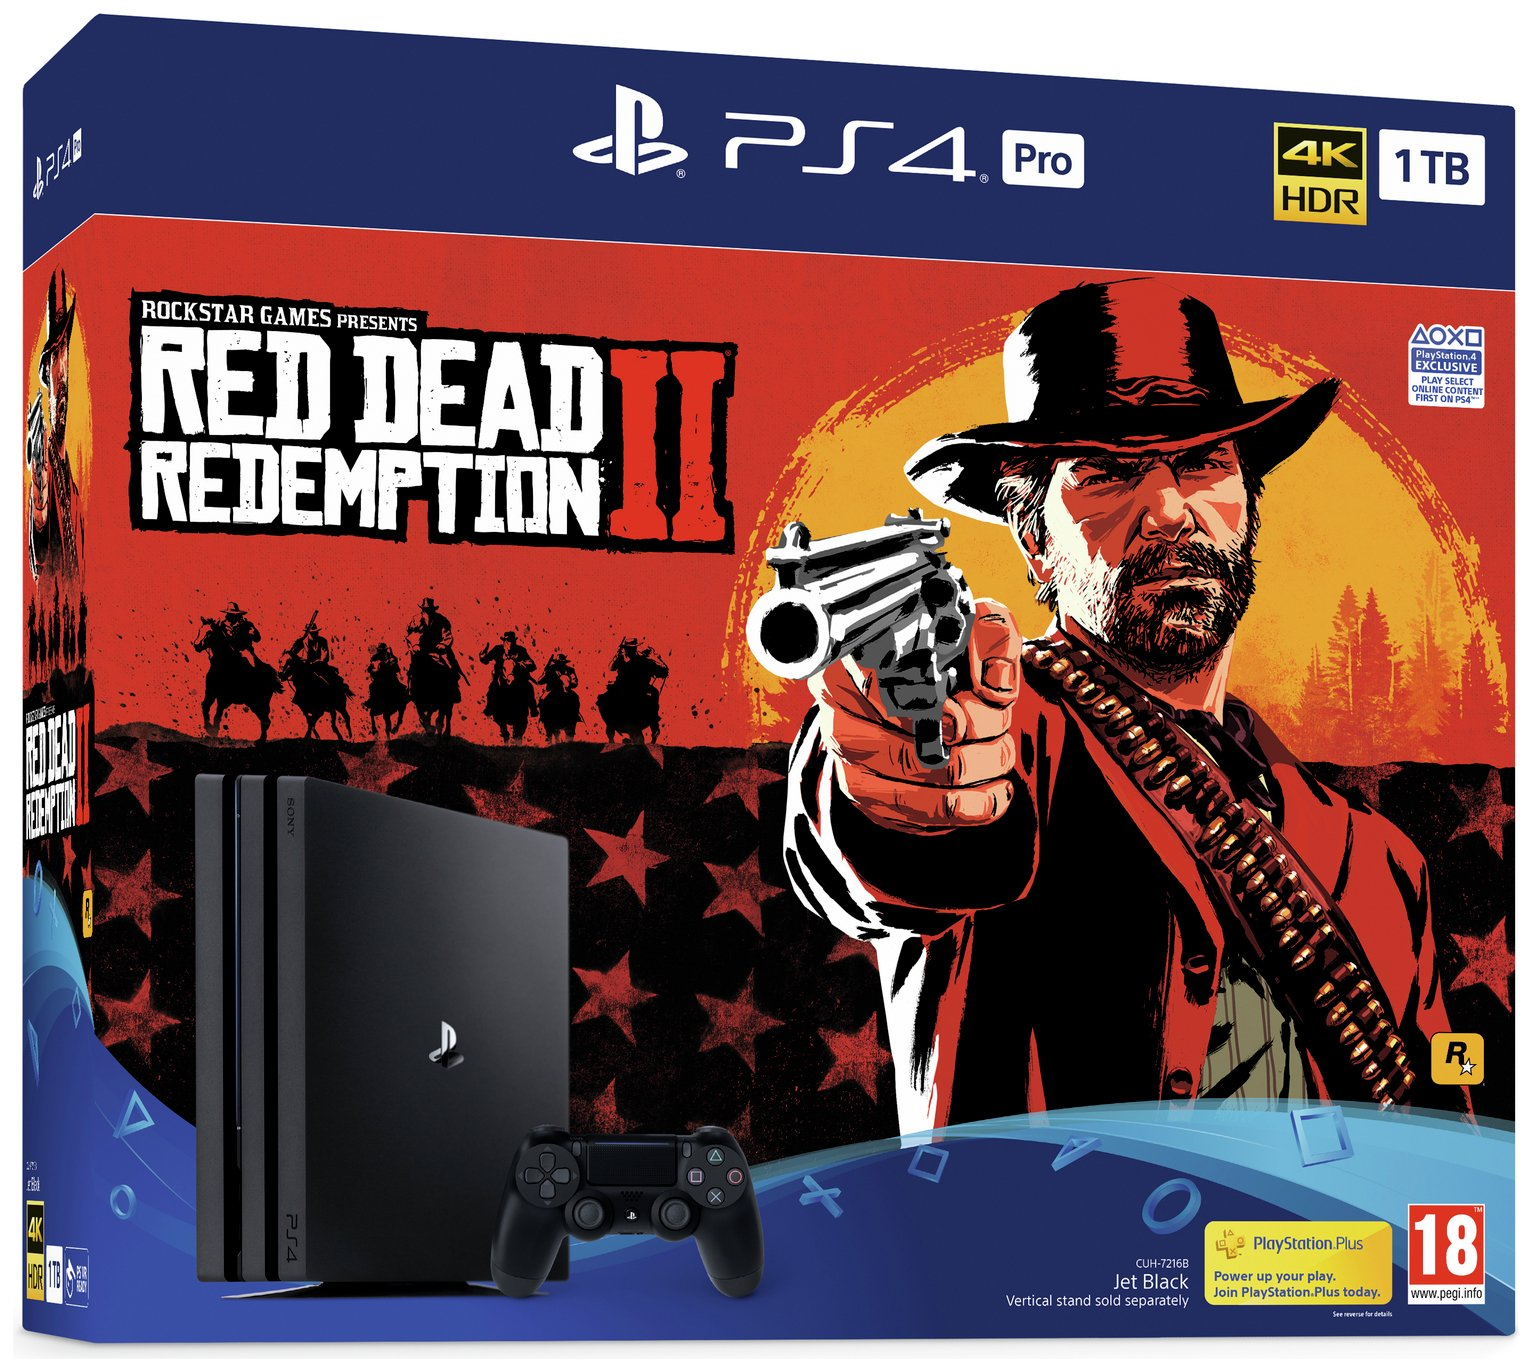 Sony PS4 Pro 1TB Console and Red Dead Redemption 2 Bundle